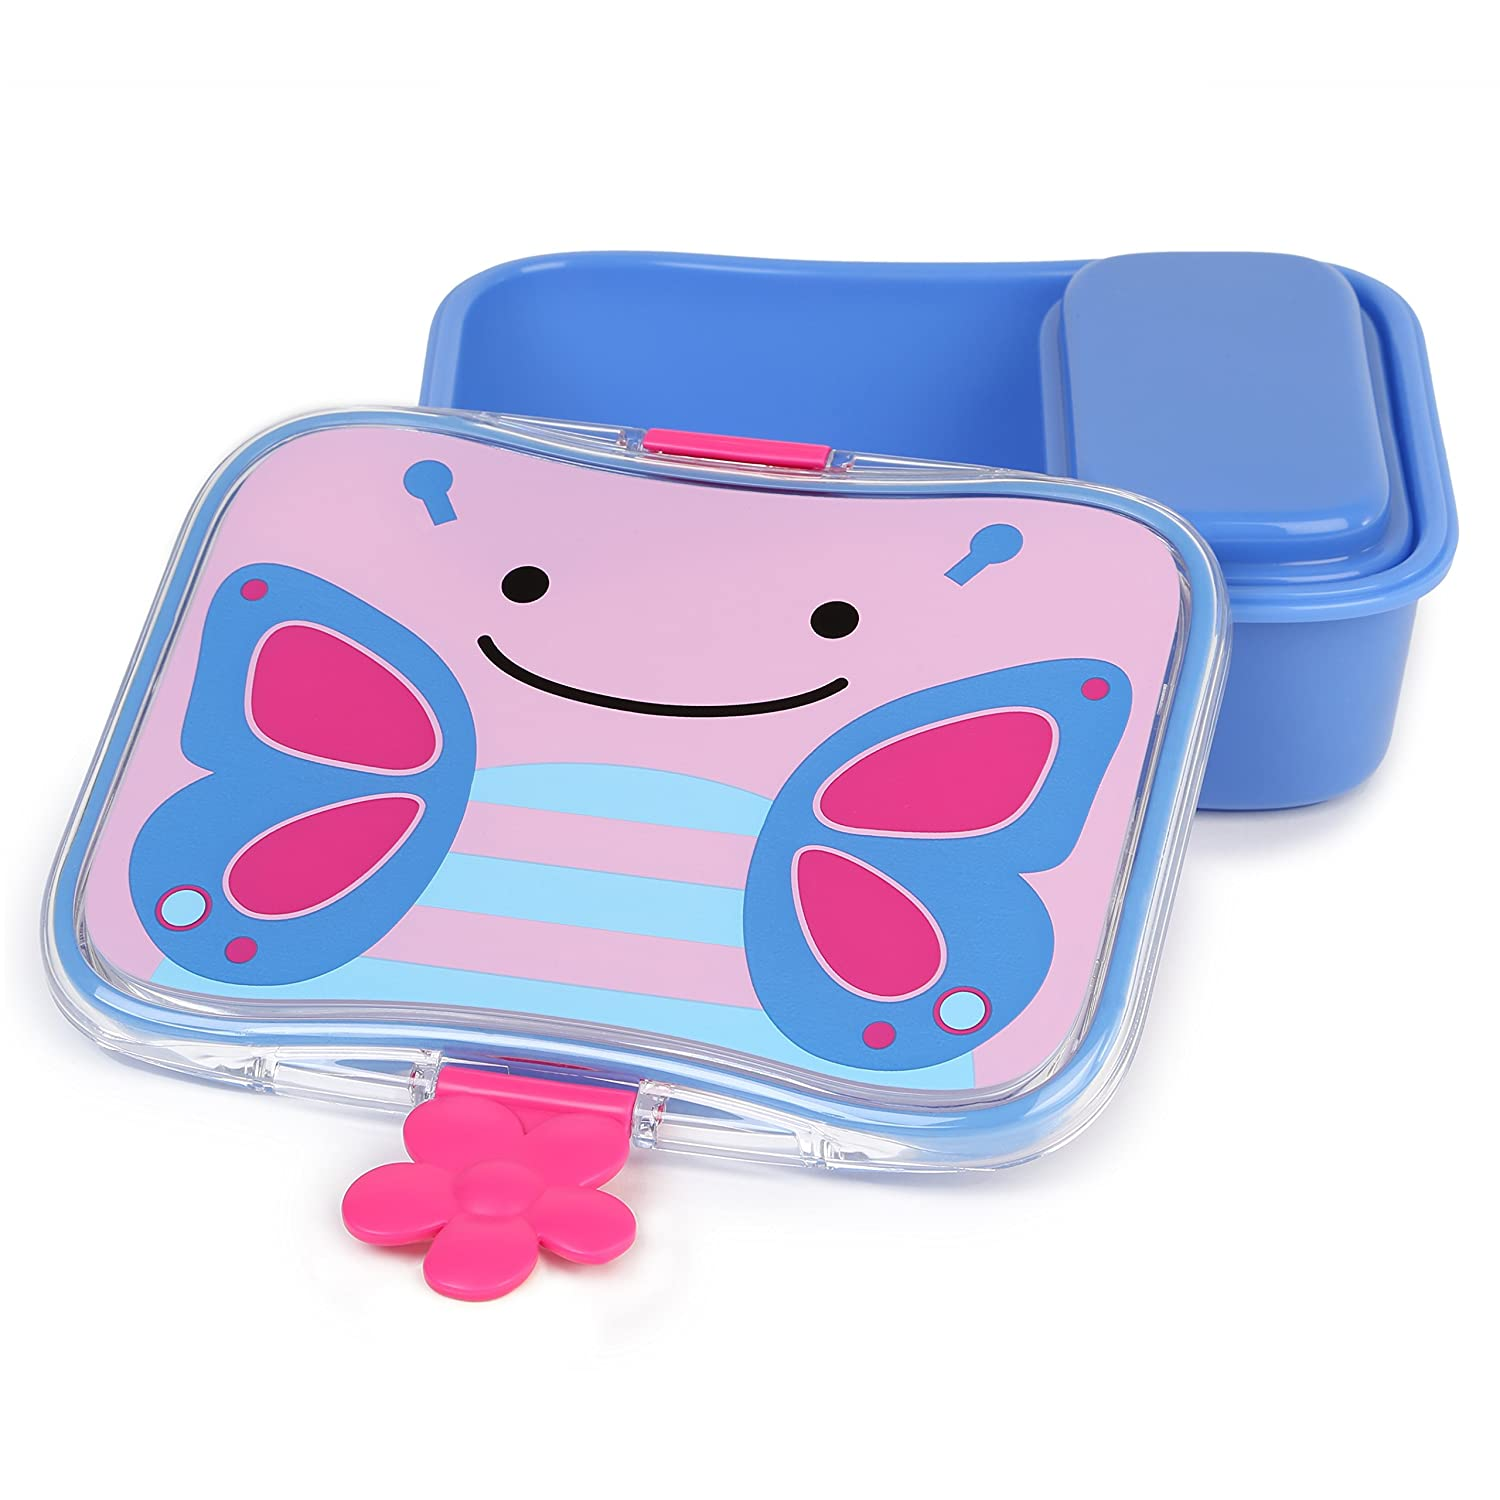 Skip Hop Toddler Mealtime Lunch Kit Feeding Set, Butterfly